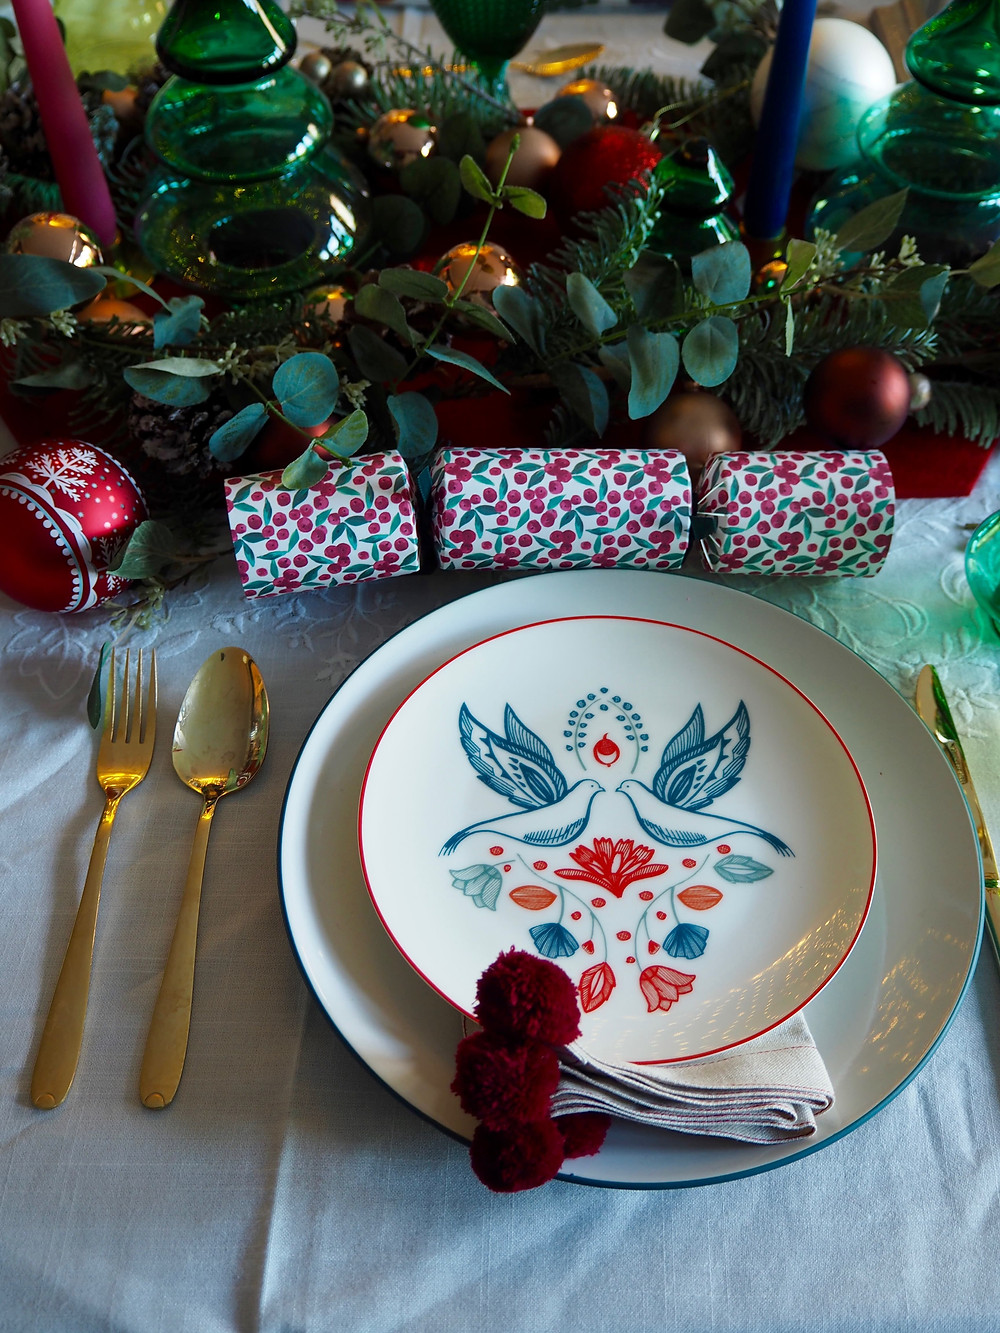 How to set your Christmas table with John Lewis Christmas crackers in pink and green with blue background and fairy lights, felt cracker centrepiece from the Folklore collection. Gold cutlery table setting. Plate with doves in blue and red.